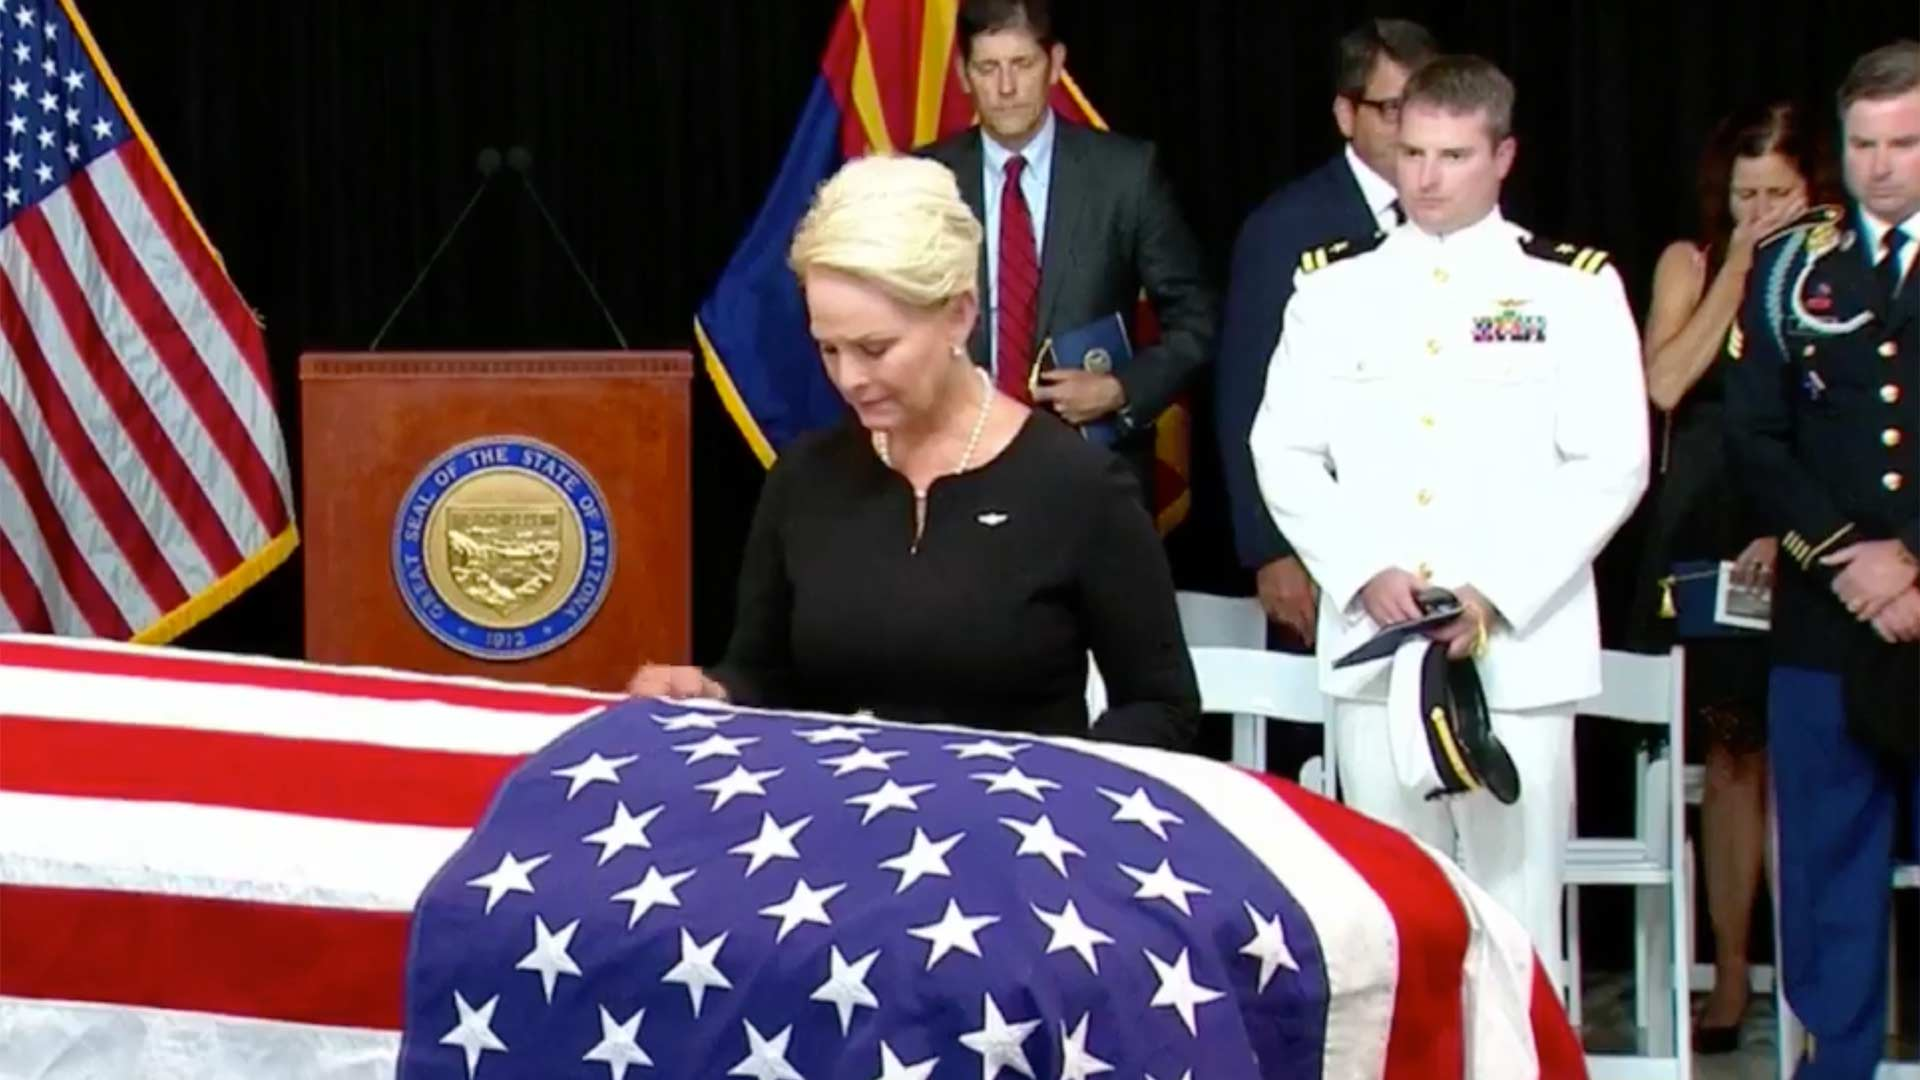 Cindy McCain at the casket of Sen. John McCain, lying in state in Phoenix, Aug. 29, 2018.